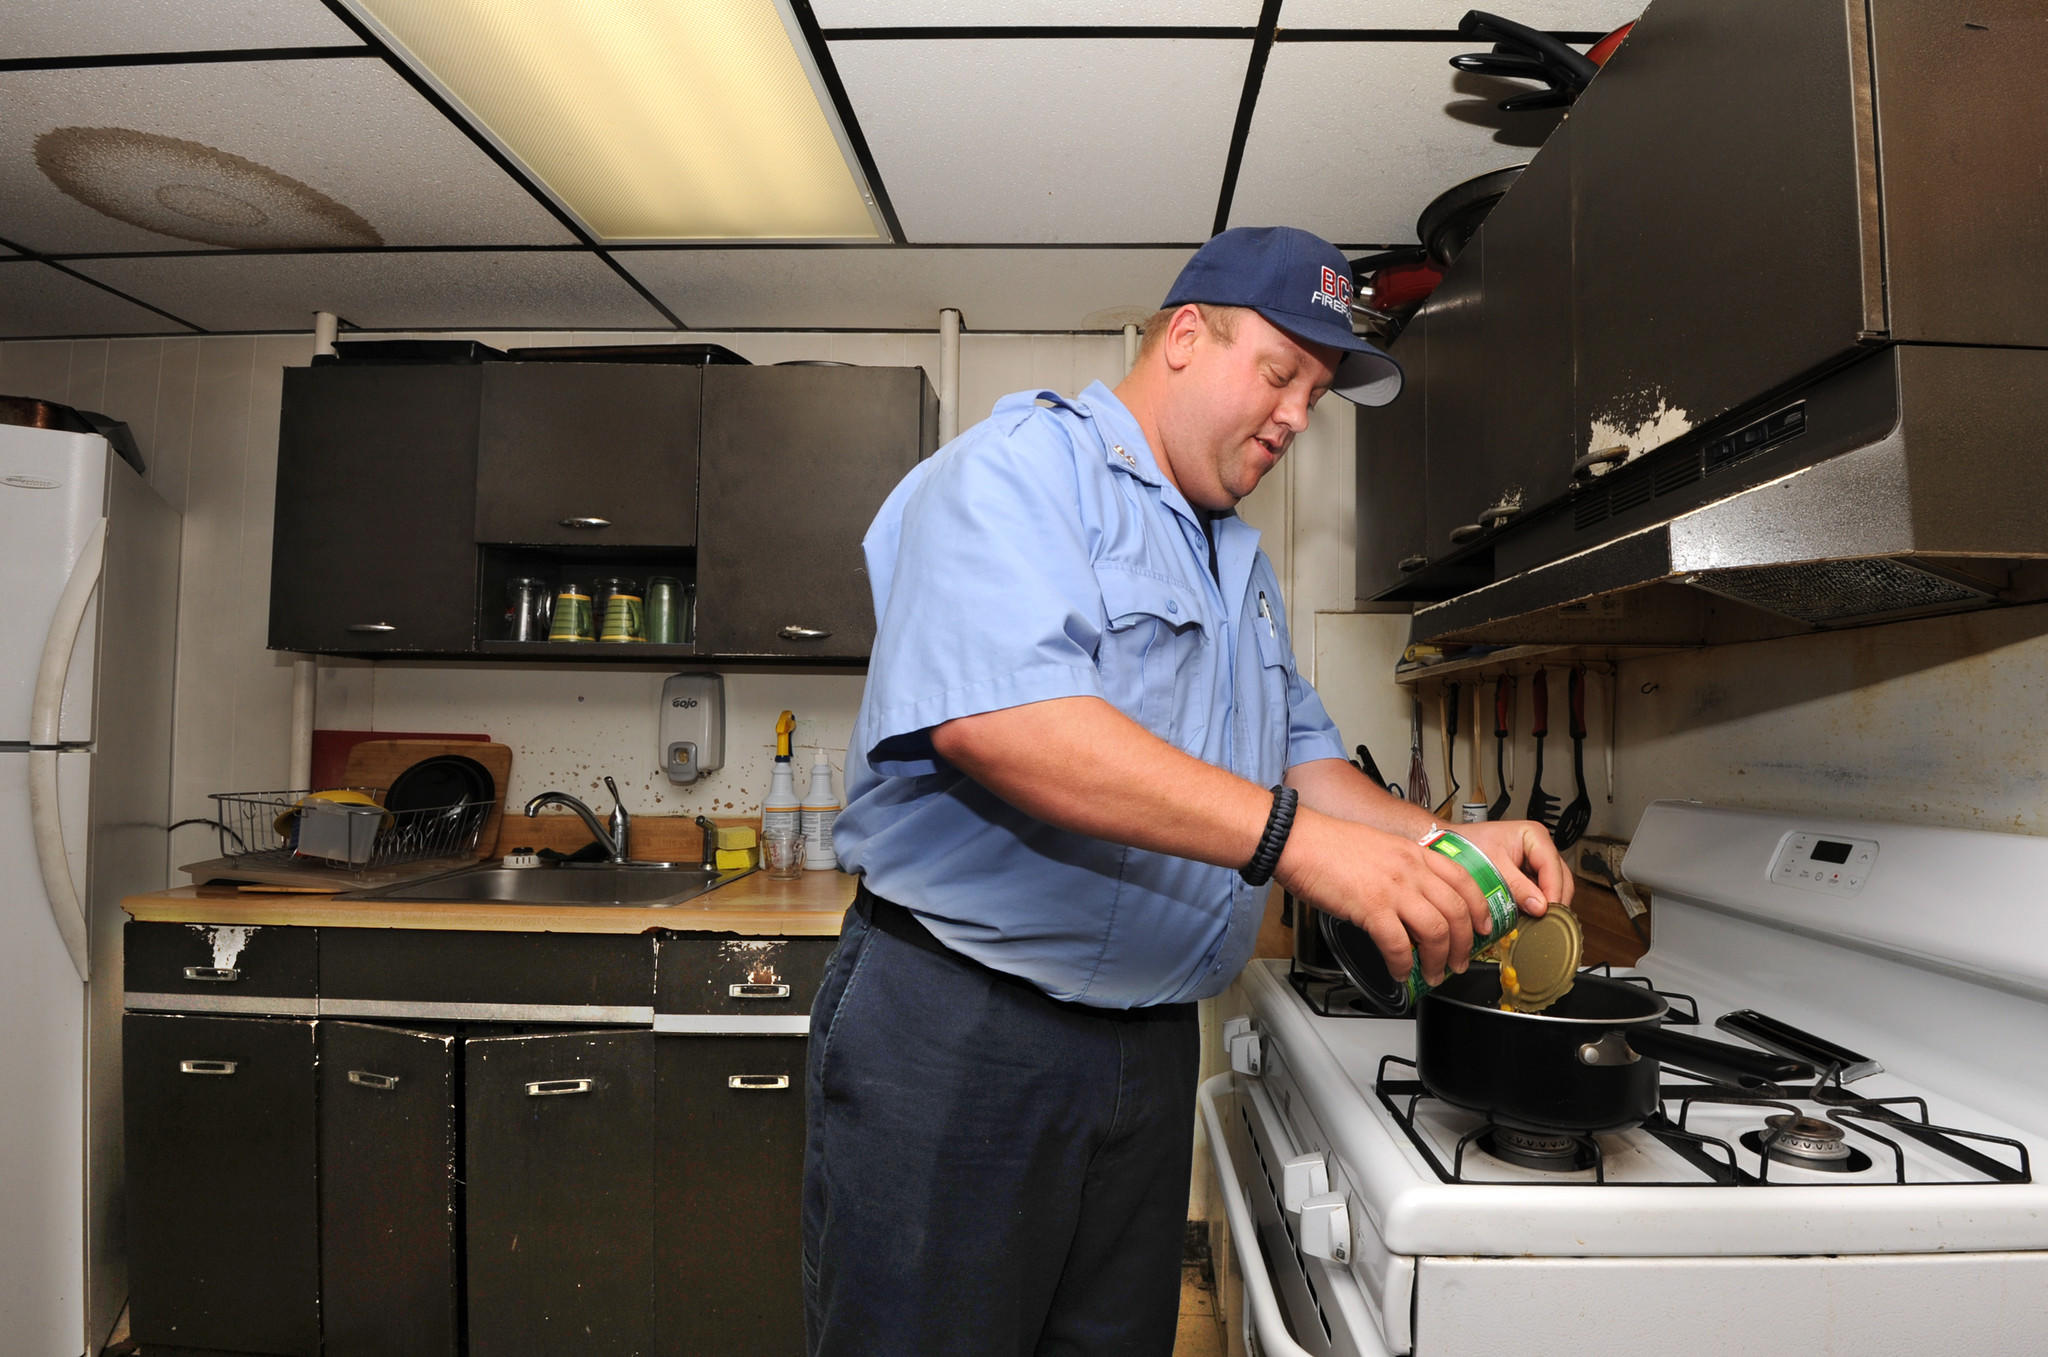 At Engine 57 on 4427 Pennington Ave., FFPM Brian Runge heats up canned corn for dinner.